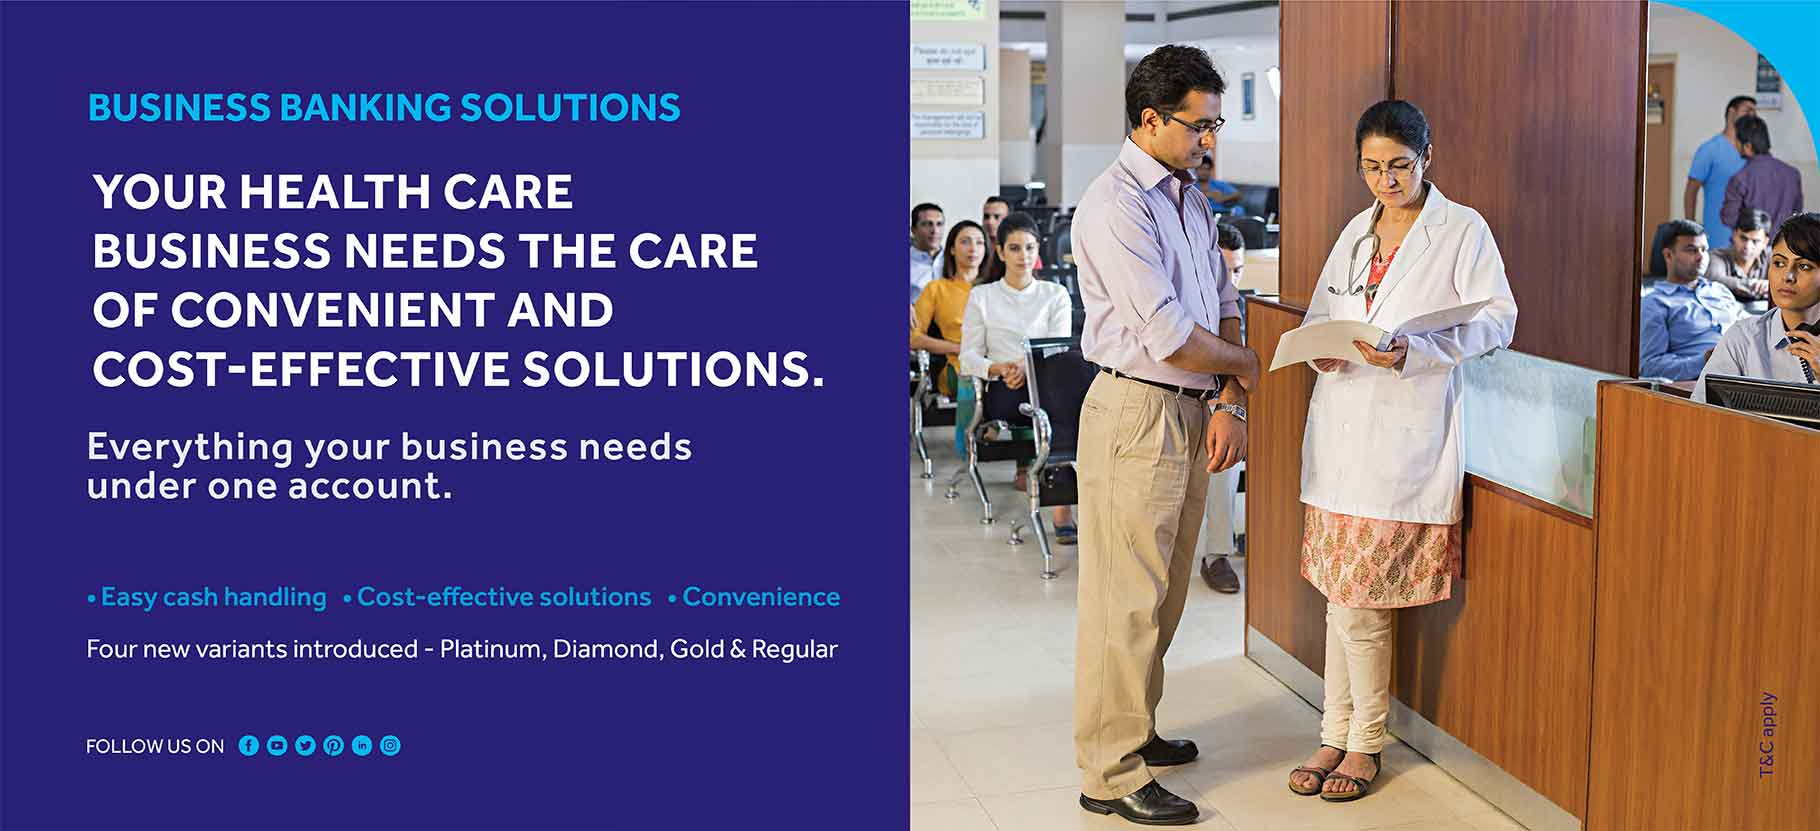 Your health care business needs the care of convenient and cost-effective solutions